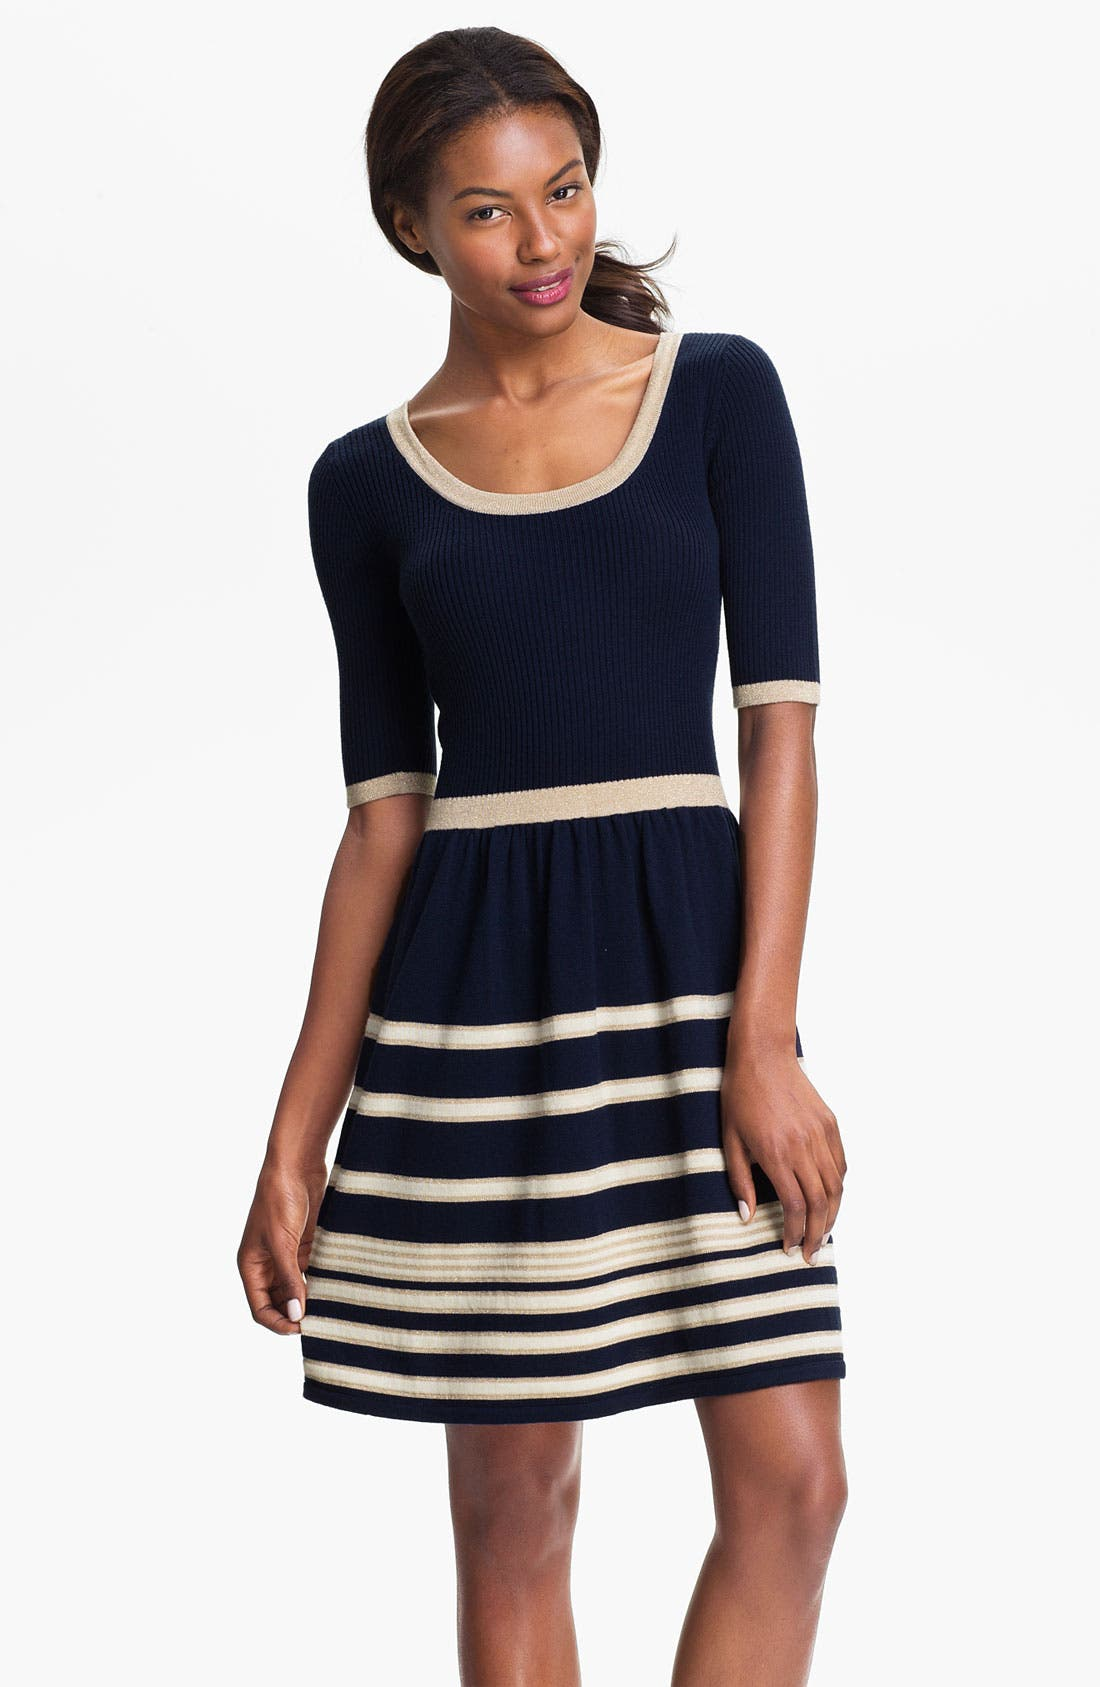 Alternate Image 1 Selected - Lilly Pulitzer® 'Joanna' Fit & Flare Sweater Dress